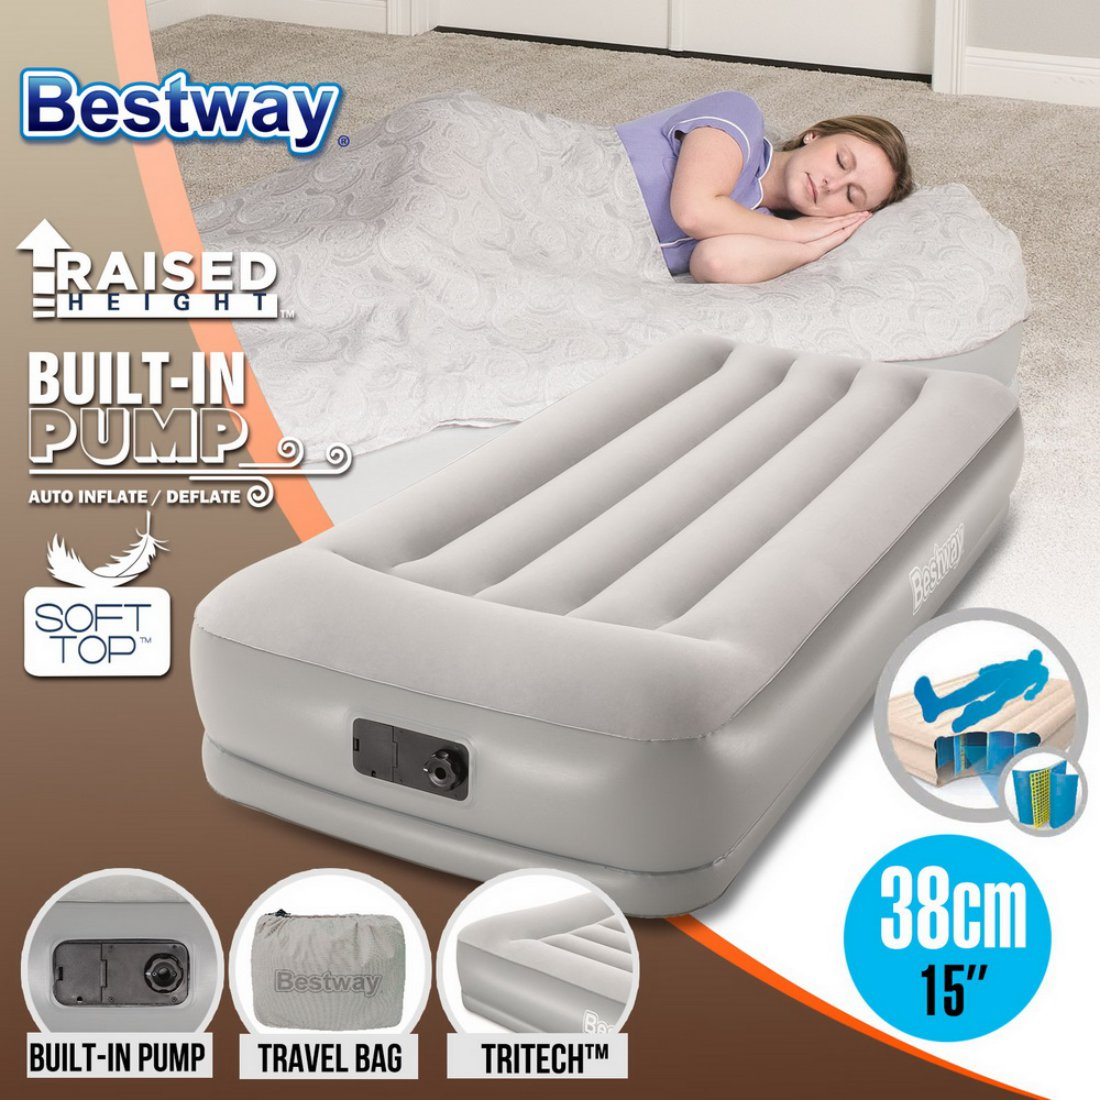 Bestway Single Air Bed Sleeping Mats Inflatable Mattresses Home Camping Pump